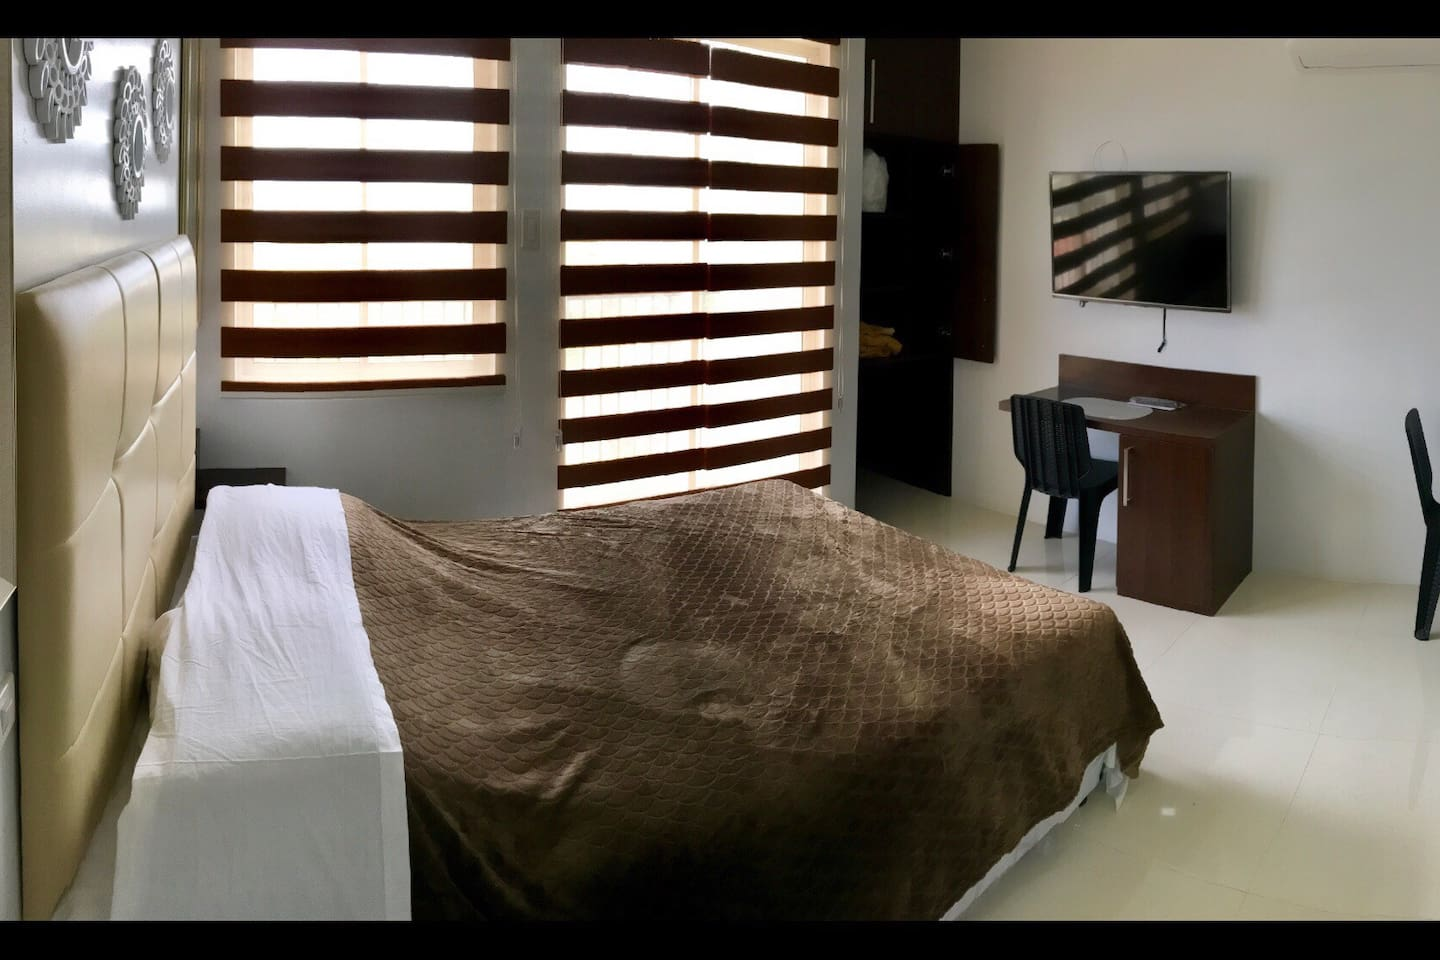 Room comes with a Queen sized Bed and a Pullout Bed that can accommodate 3 Adults or 2 Adults & 2 Kids. Smart TV/Cable TV, 2 Seater Pullout Dinner and Kitchenette